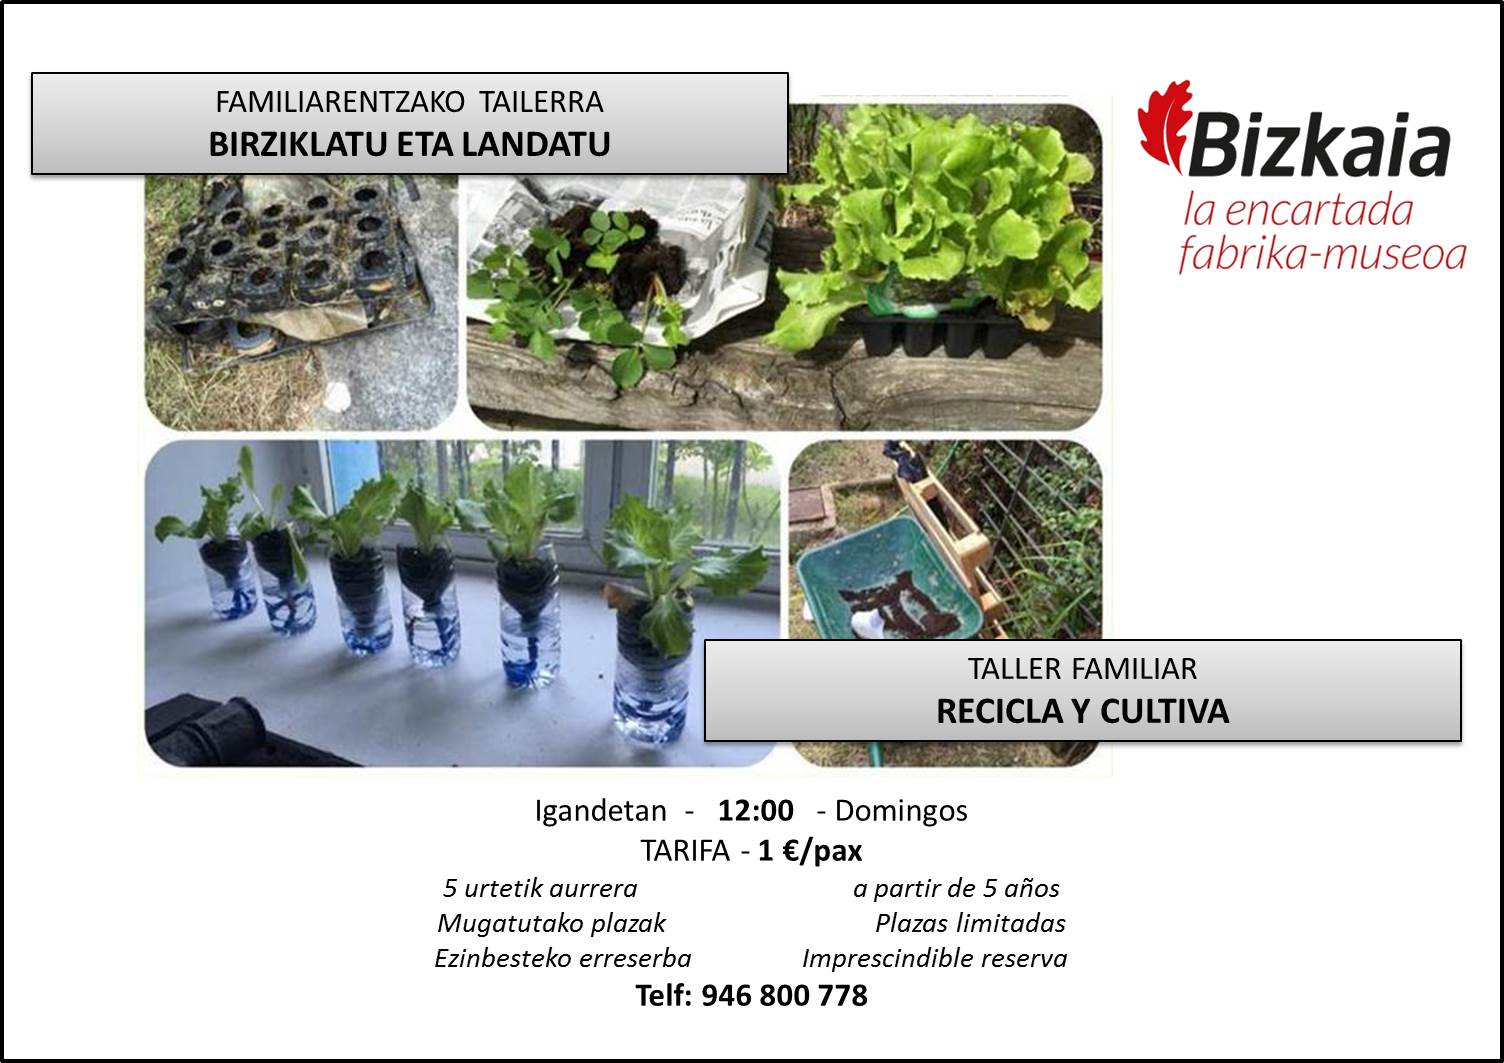 Taller familiar: Recicla y cultiva